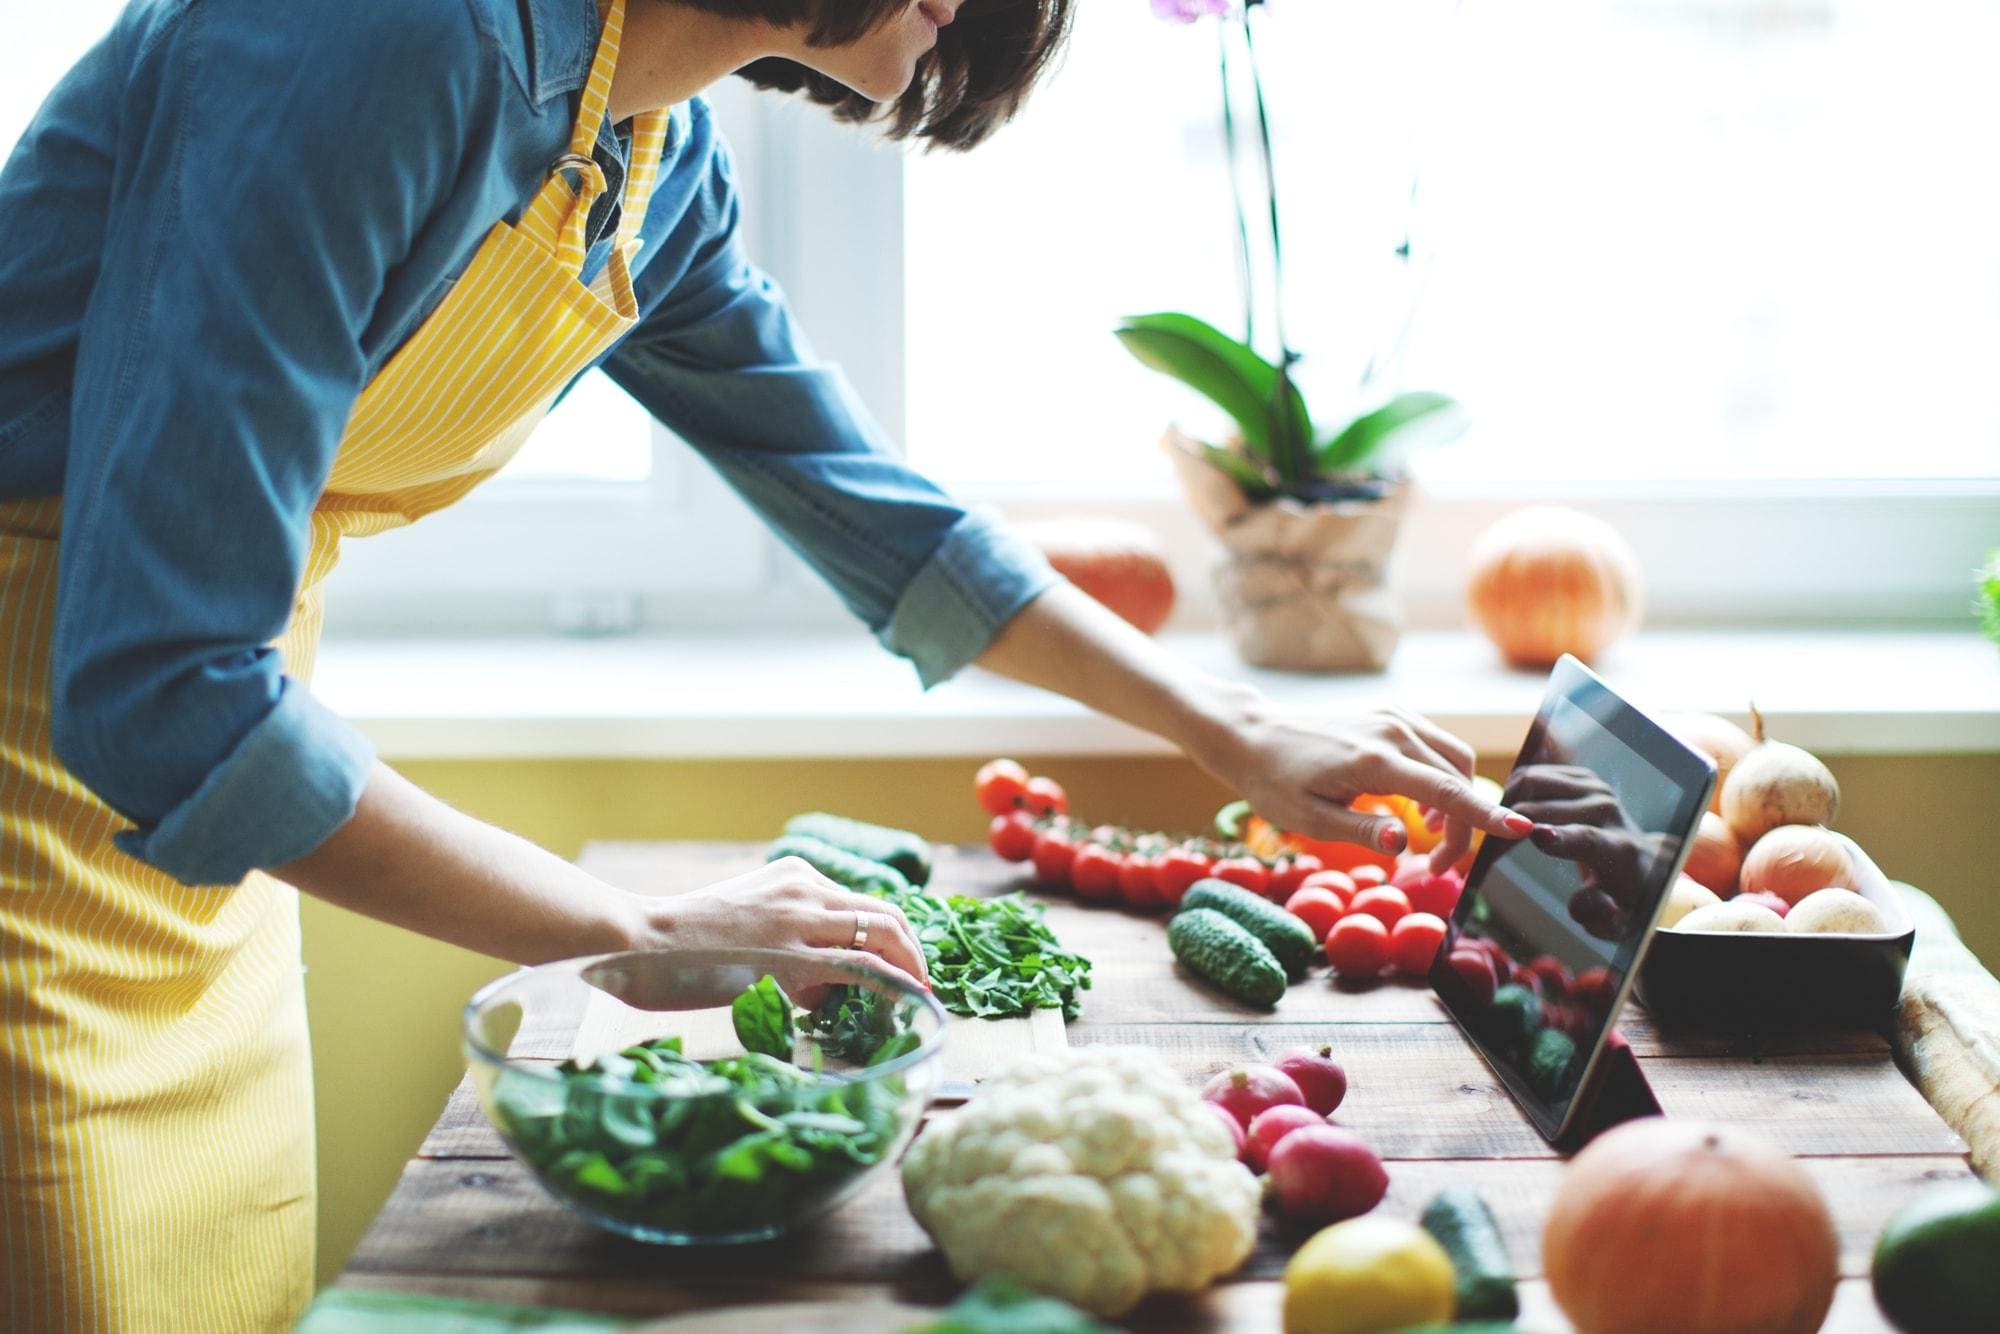 Woman touching tablet while cooking with vegetables in kitchen